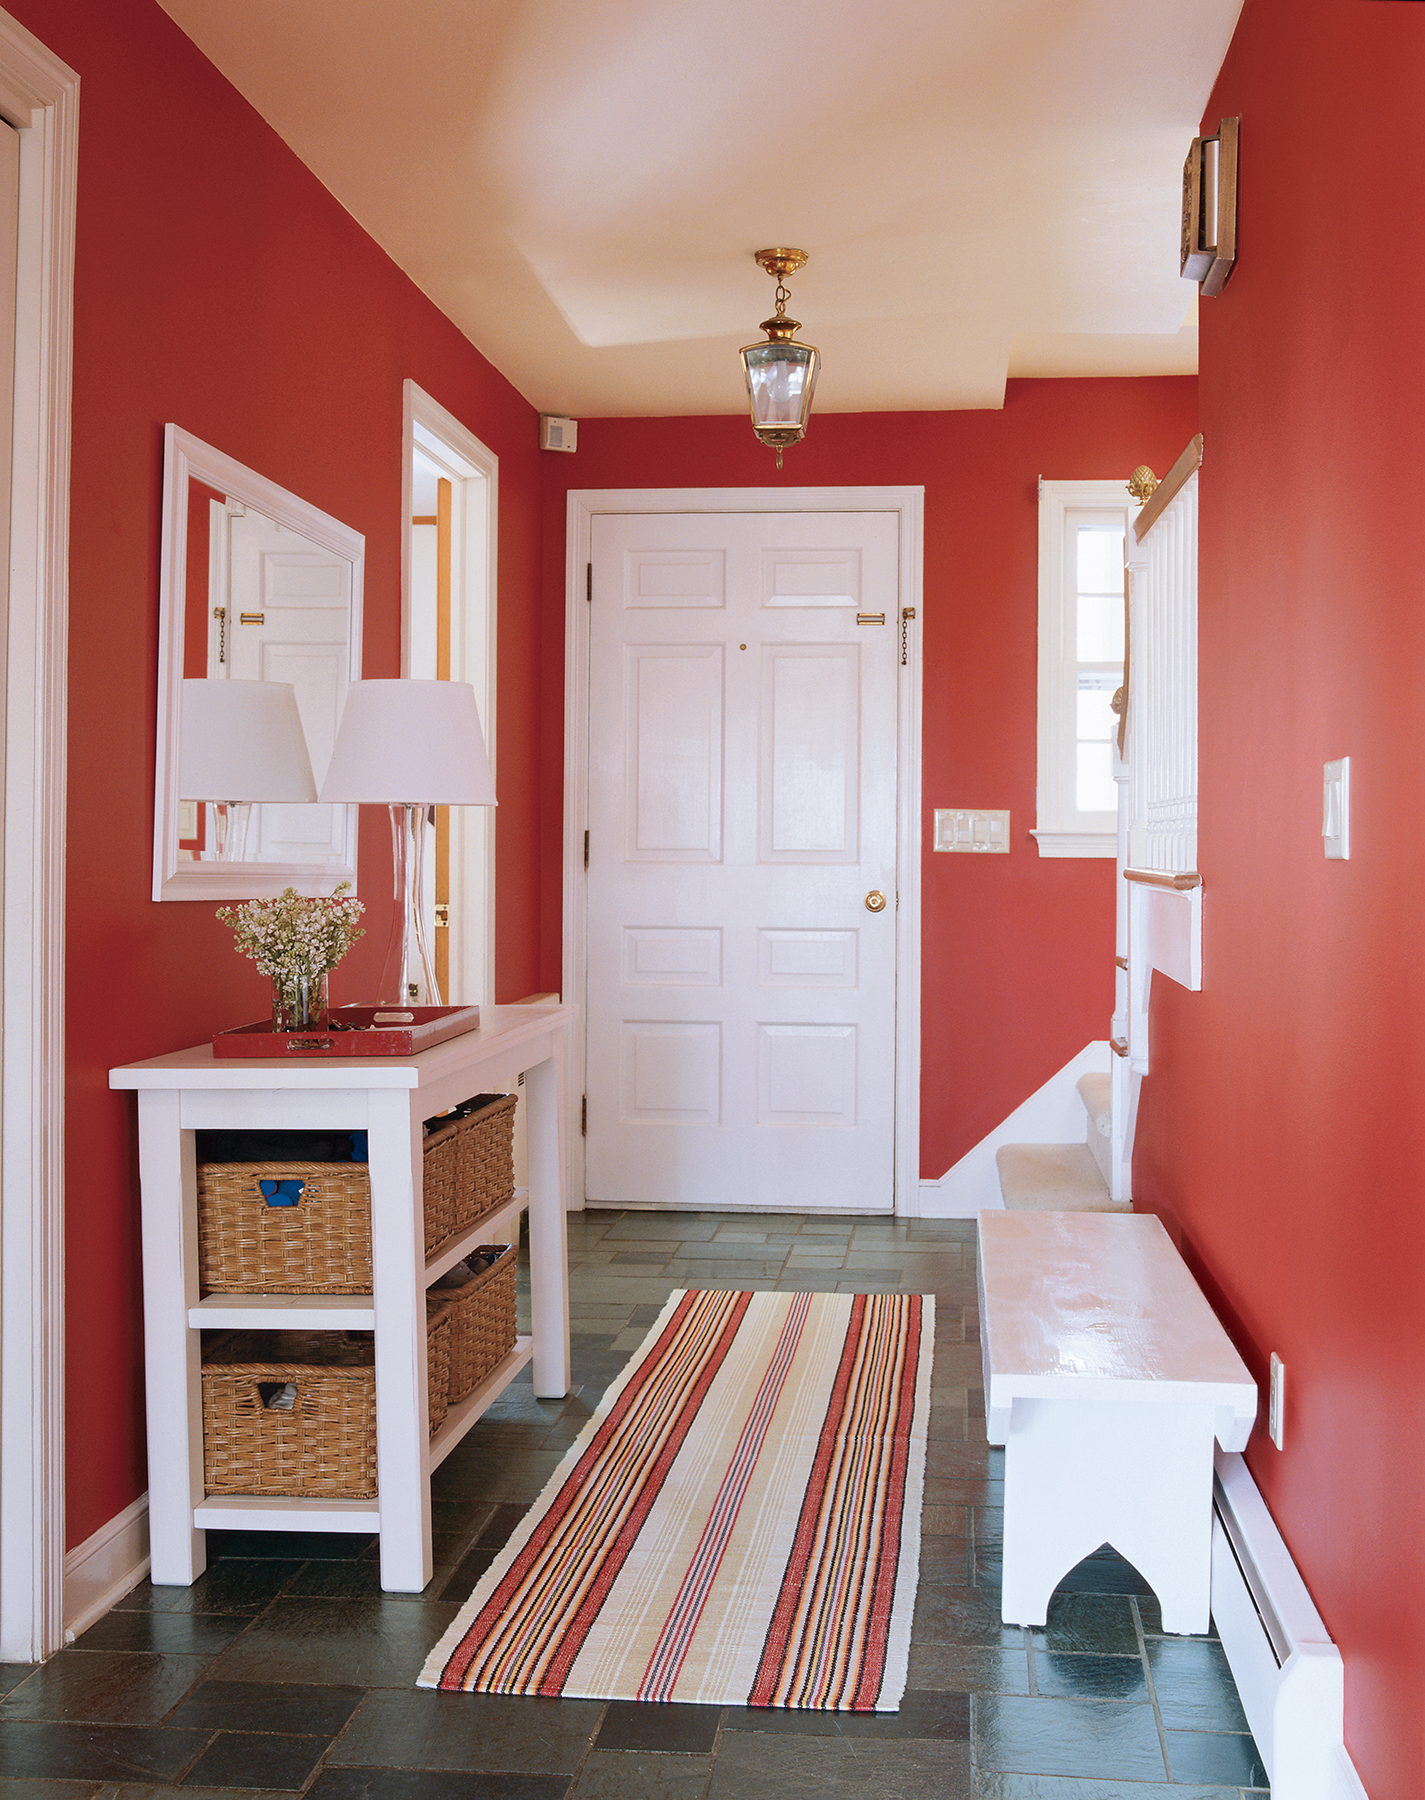 21 ways to enhance an entryway - real simple